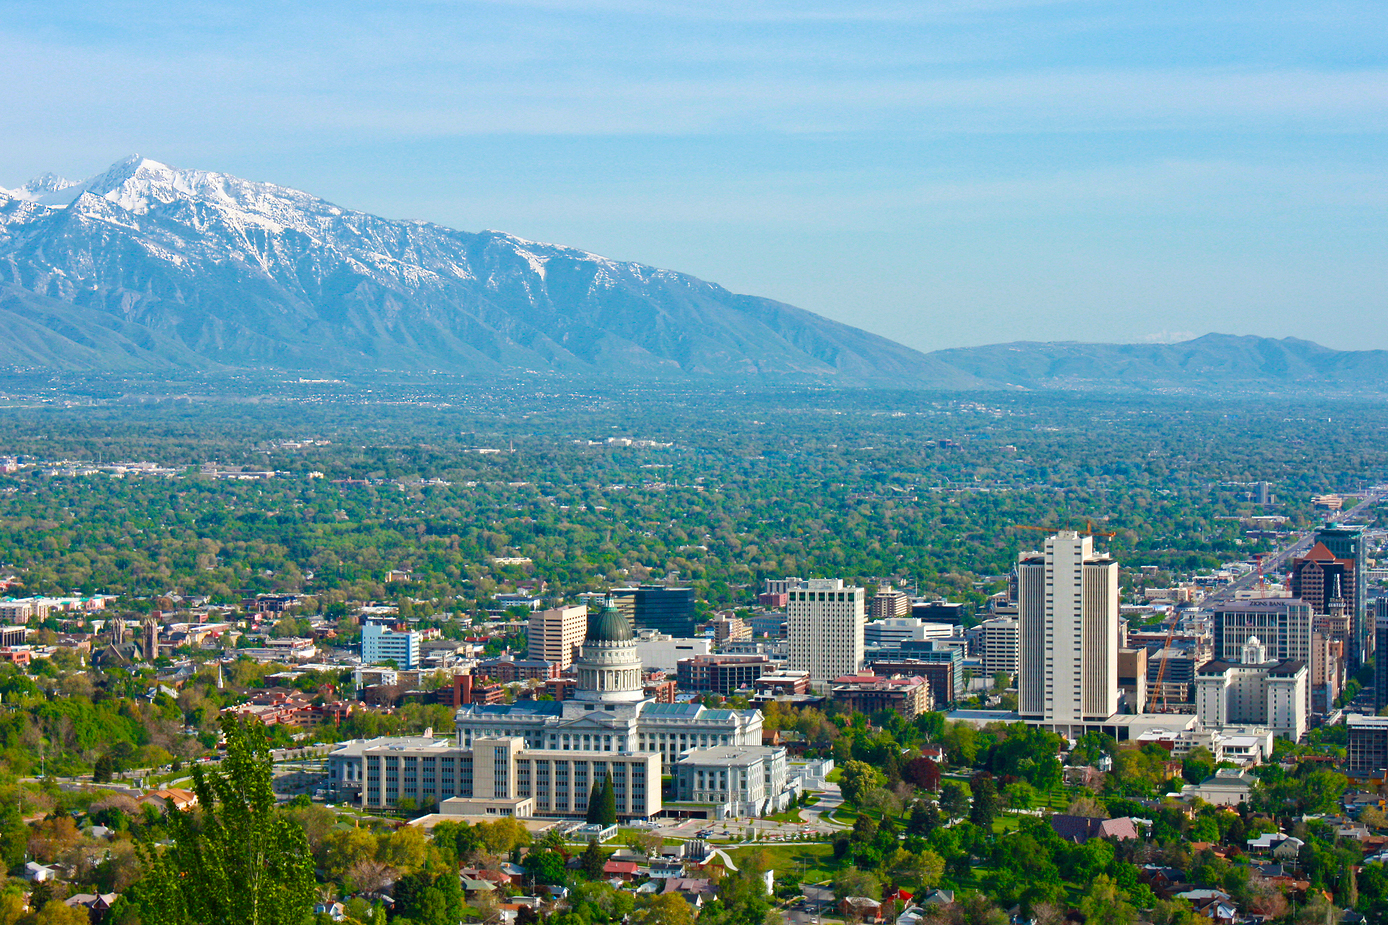 The Salt Lake City area in Utah has plenty to offer baby boomers looking to retire.